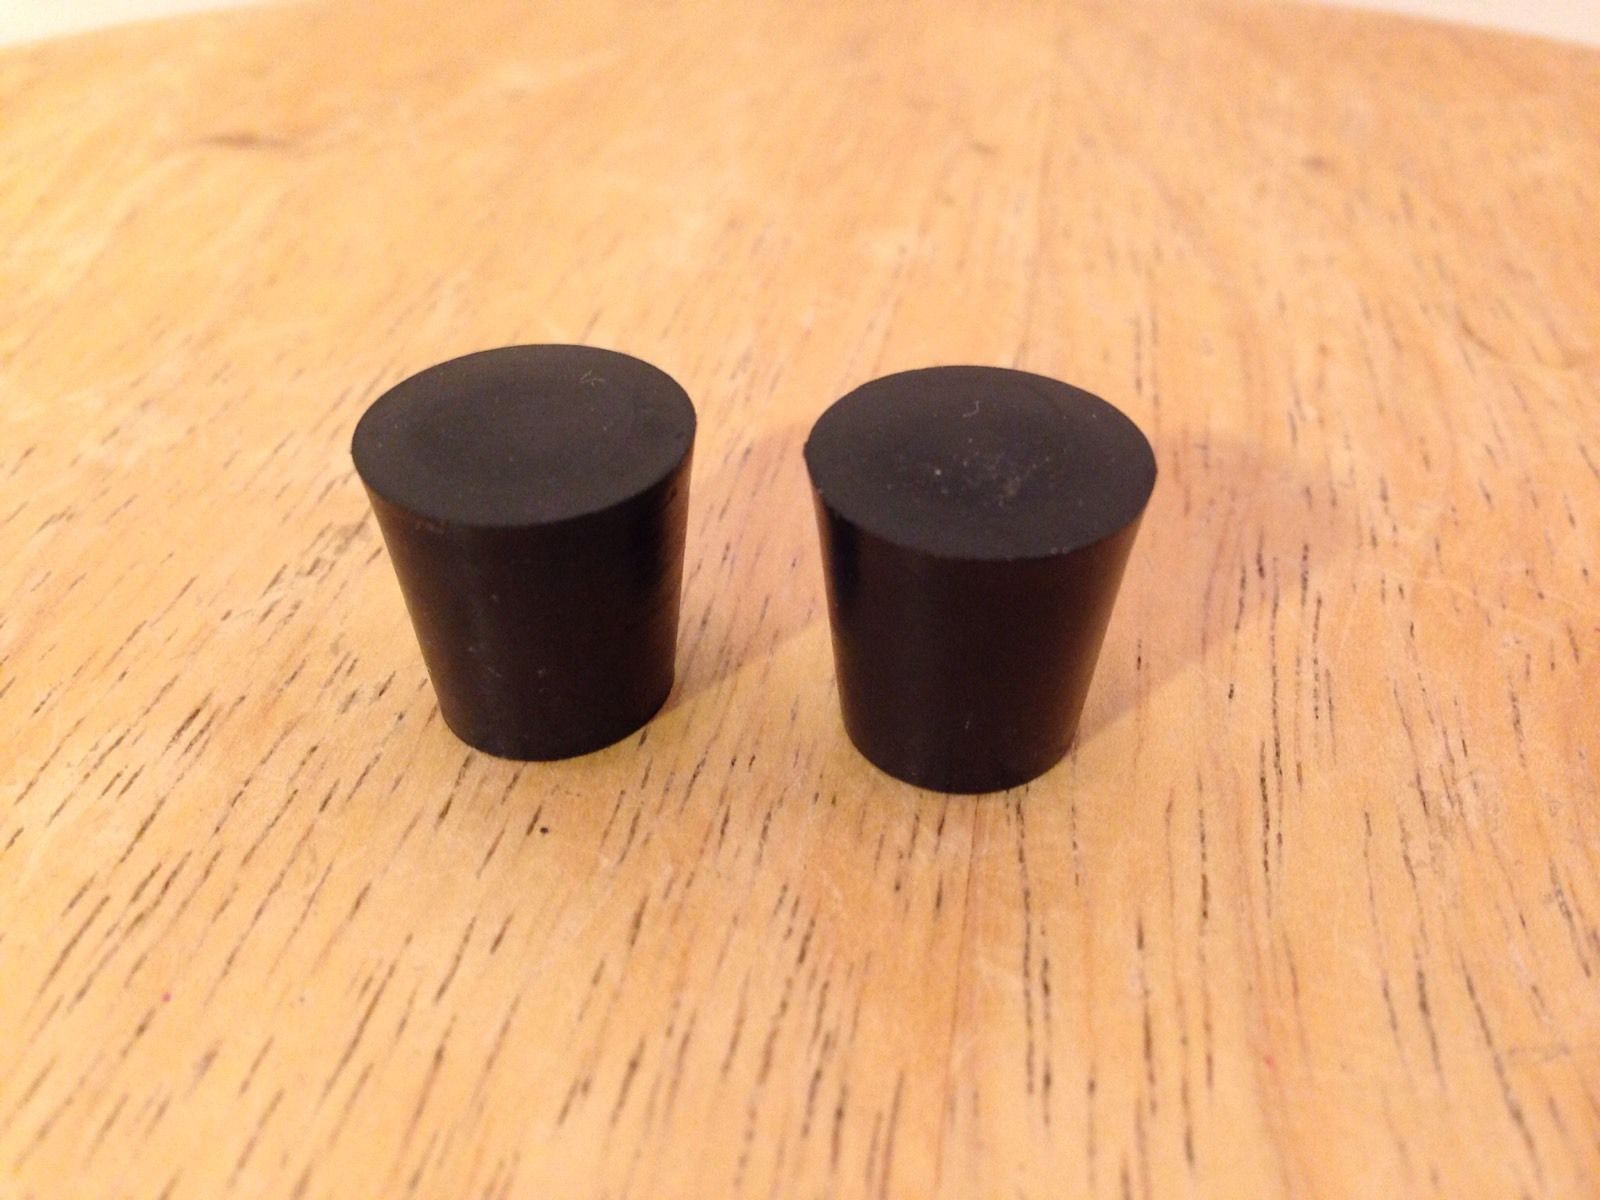 Bunn Coffee Maker Grx B Parts : Bunn-O-Matic GRX-B10-cup Coffee Brewer Machines Replacement Rubber Feet Part - Replacement Parts ...